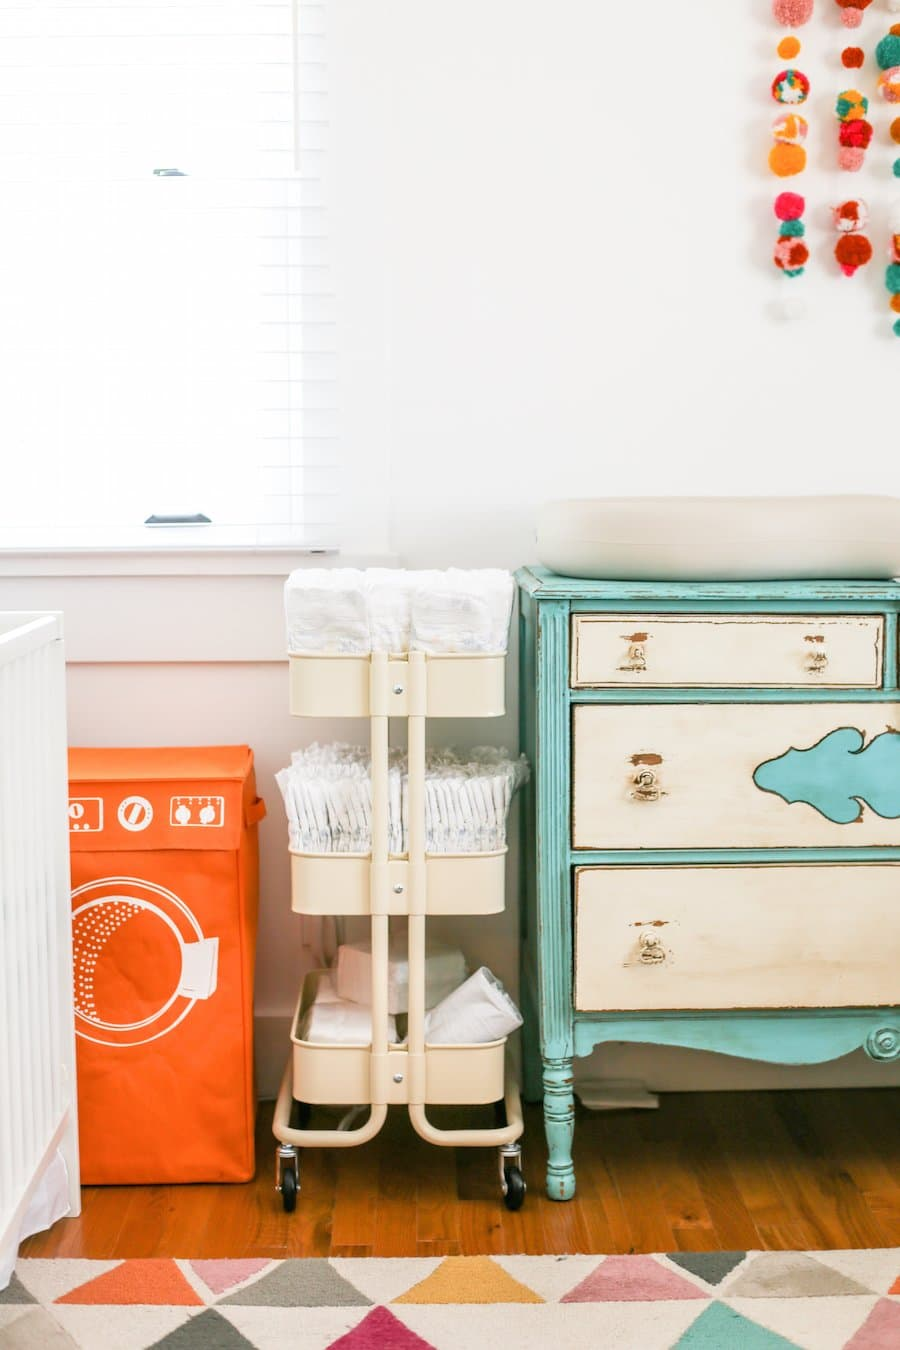 Ultimate Twin Baby Registry Essentials, Twin Baby Must Haves, Products to Make Life Easier With Twins,Twin Essentials Checklist PDF, When to Start a Baby Registry for Twins, Best Place to Register for Twins, Baby Registry Guide for Twins, What Do You Need for Twins Checklist, Baby Registry Guide for Twins